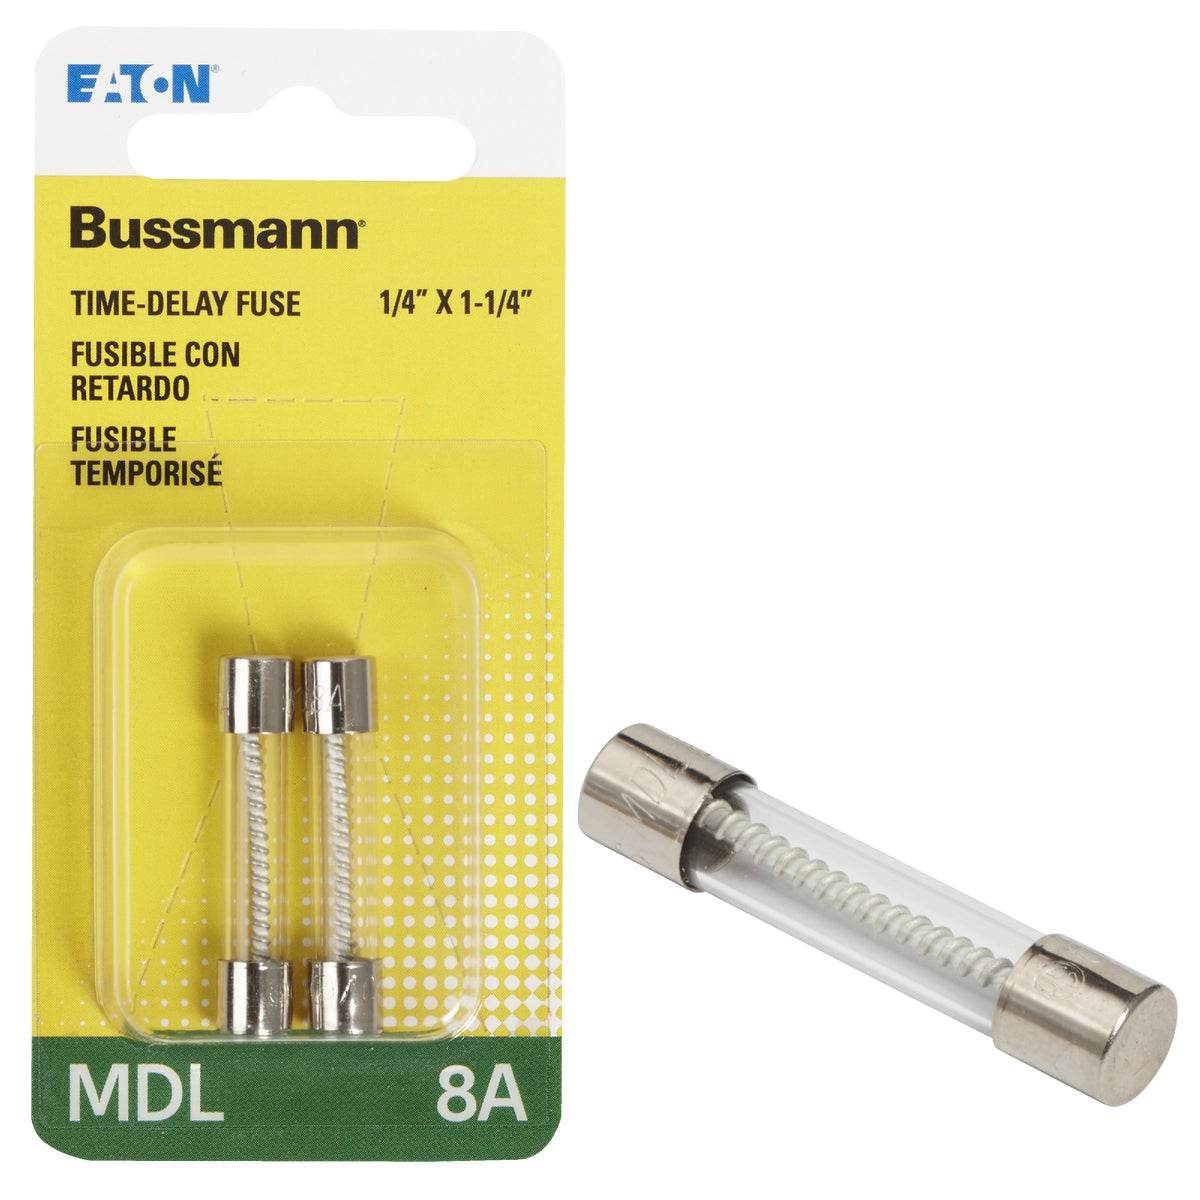 8A ELECTRONIC FUSE - BP/MDL-8 by Bussmann Cooper